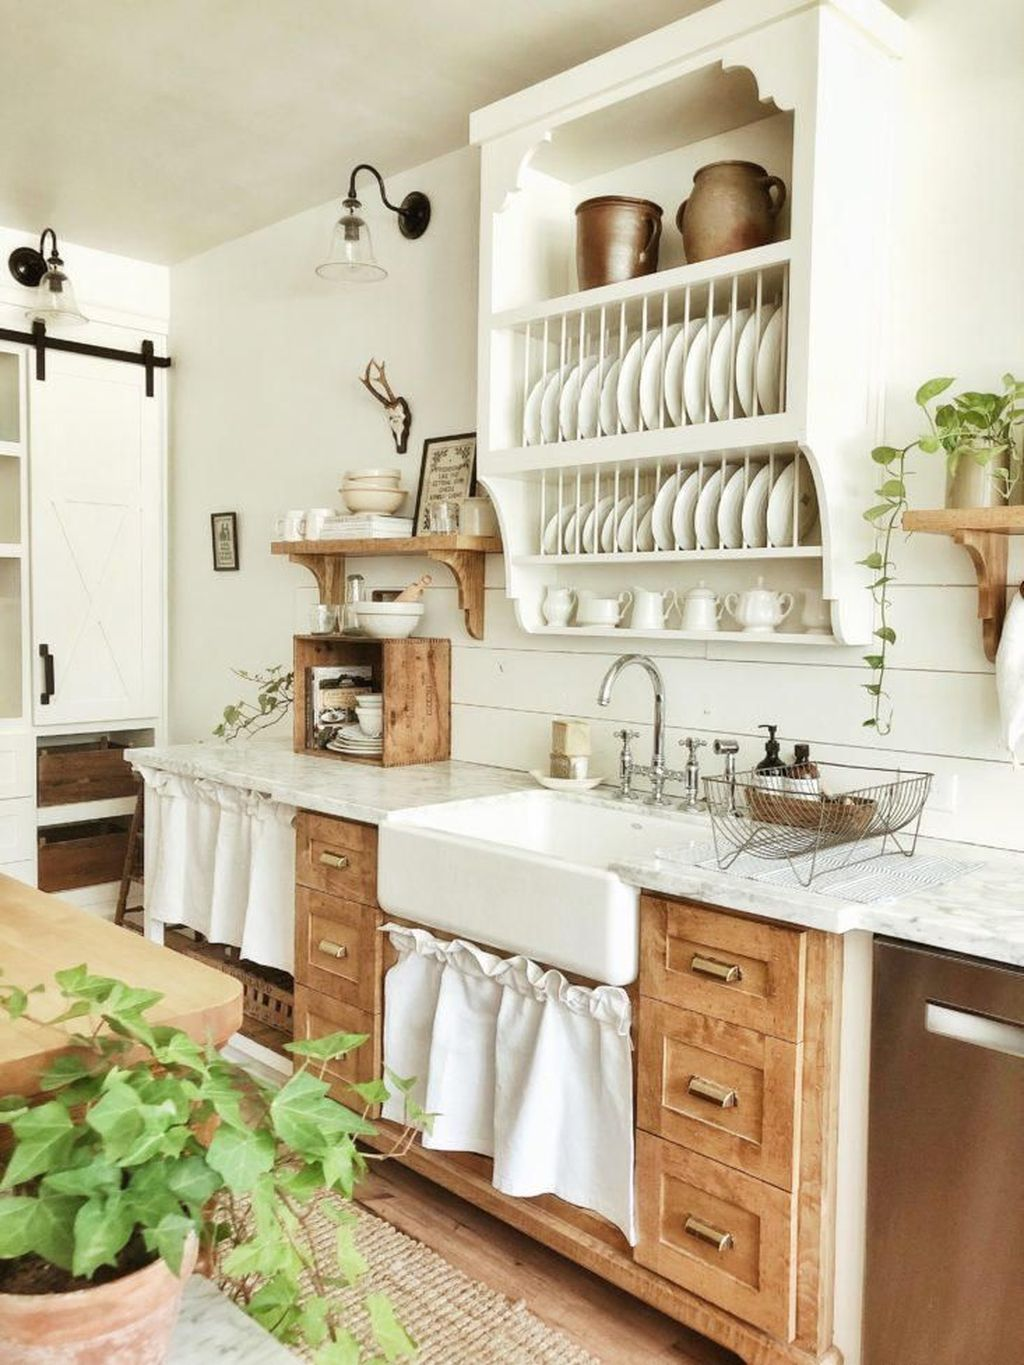 20 Chic Kitchen Style Ideas For Comfortable Old Kitchen